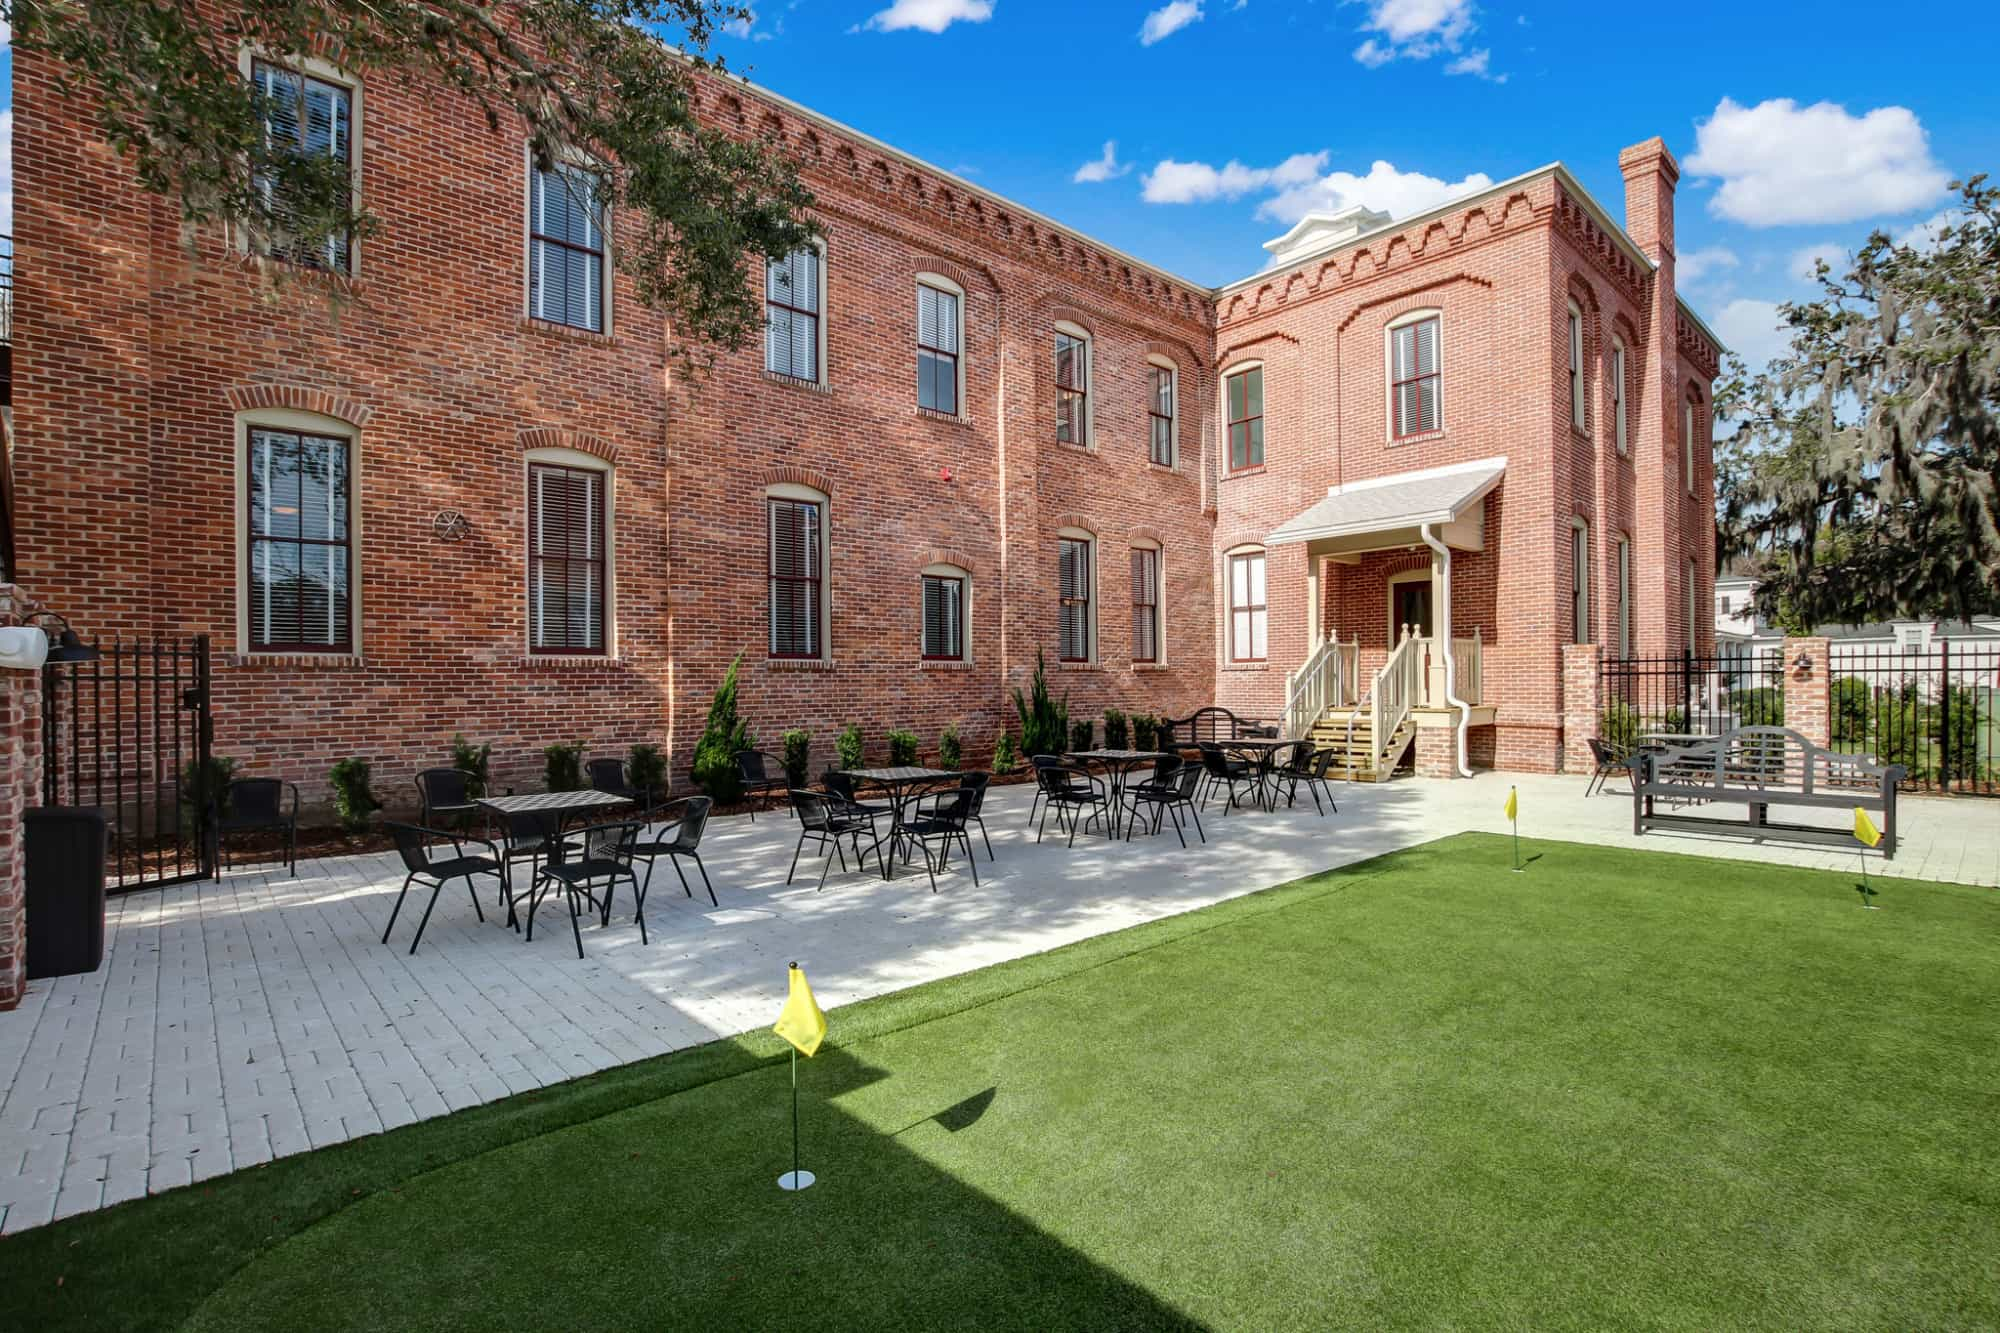 Amelia Schoolhouse Courtyard & Putting green